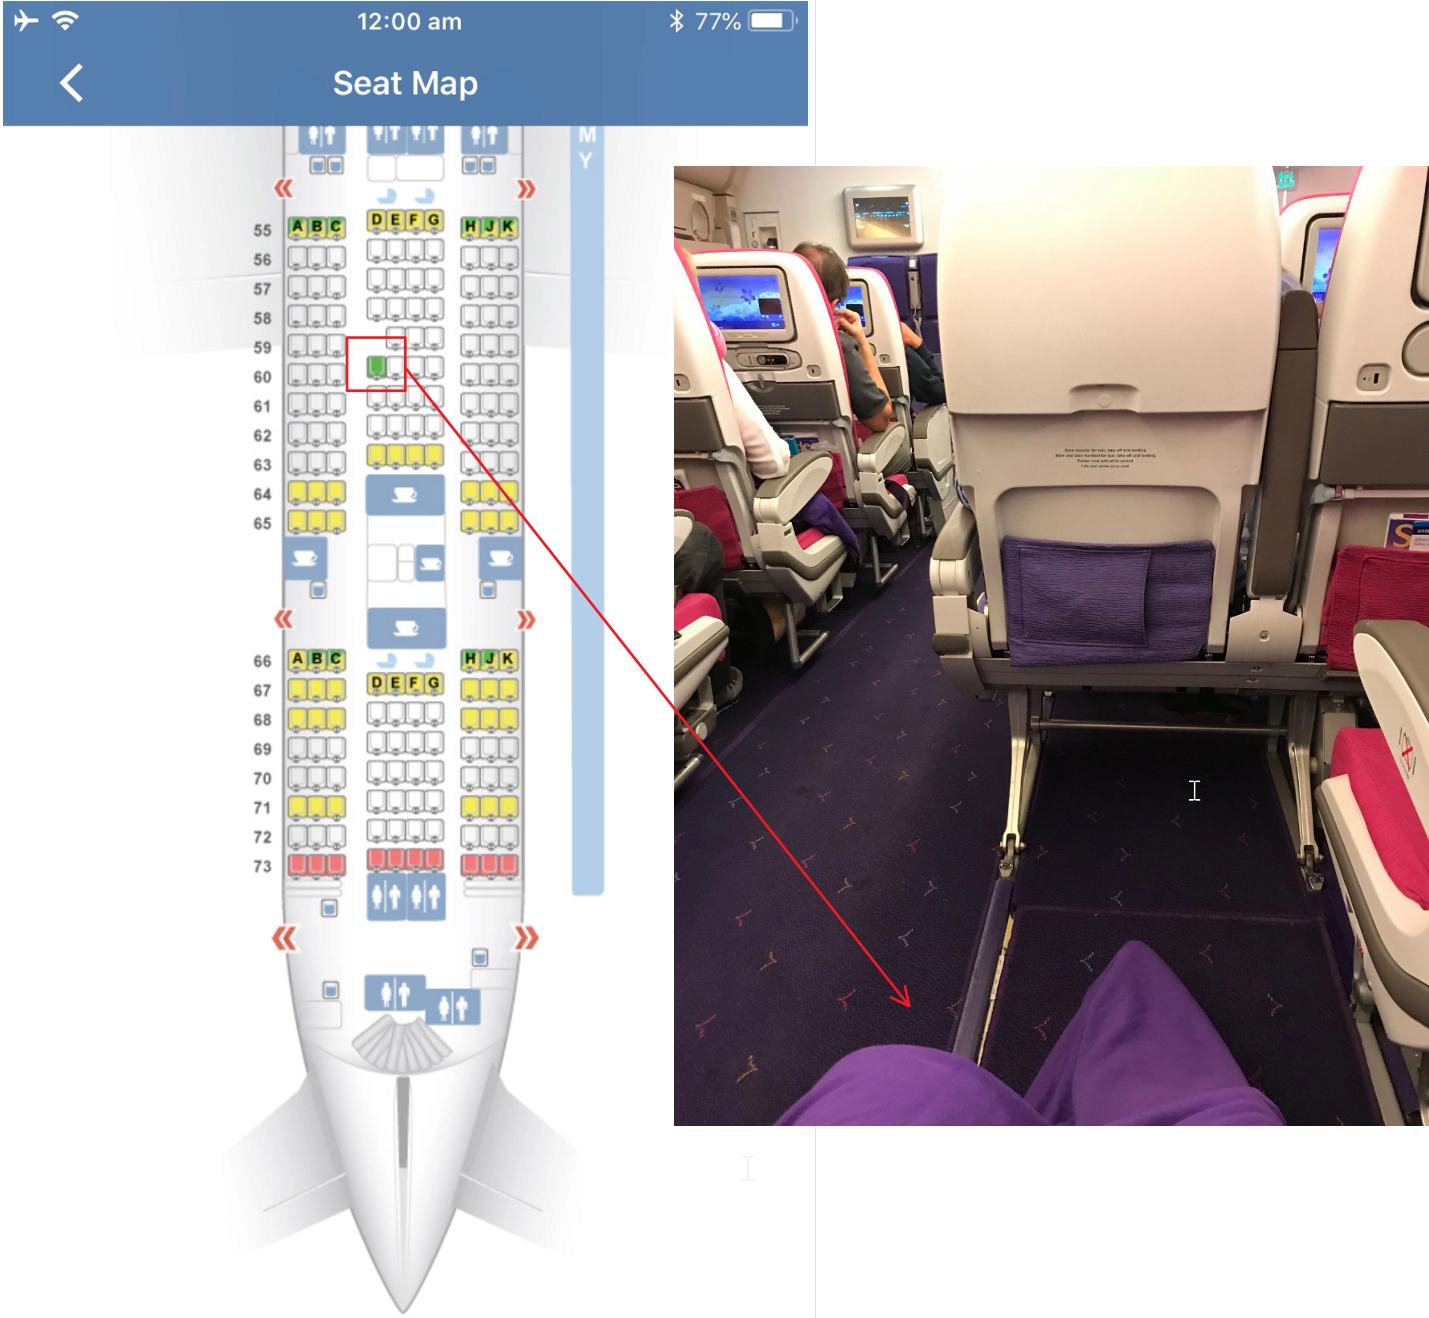 Plane seat and map